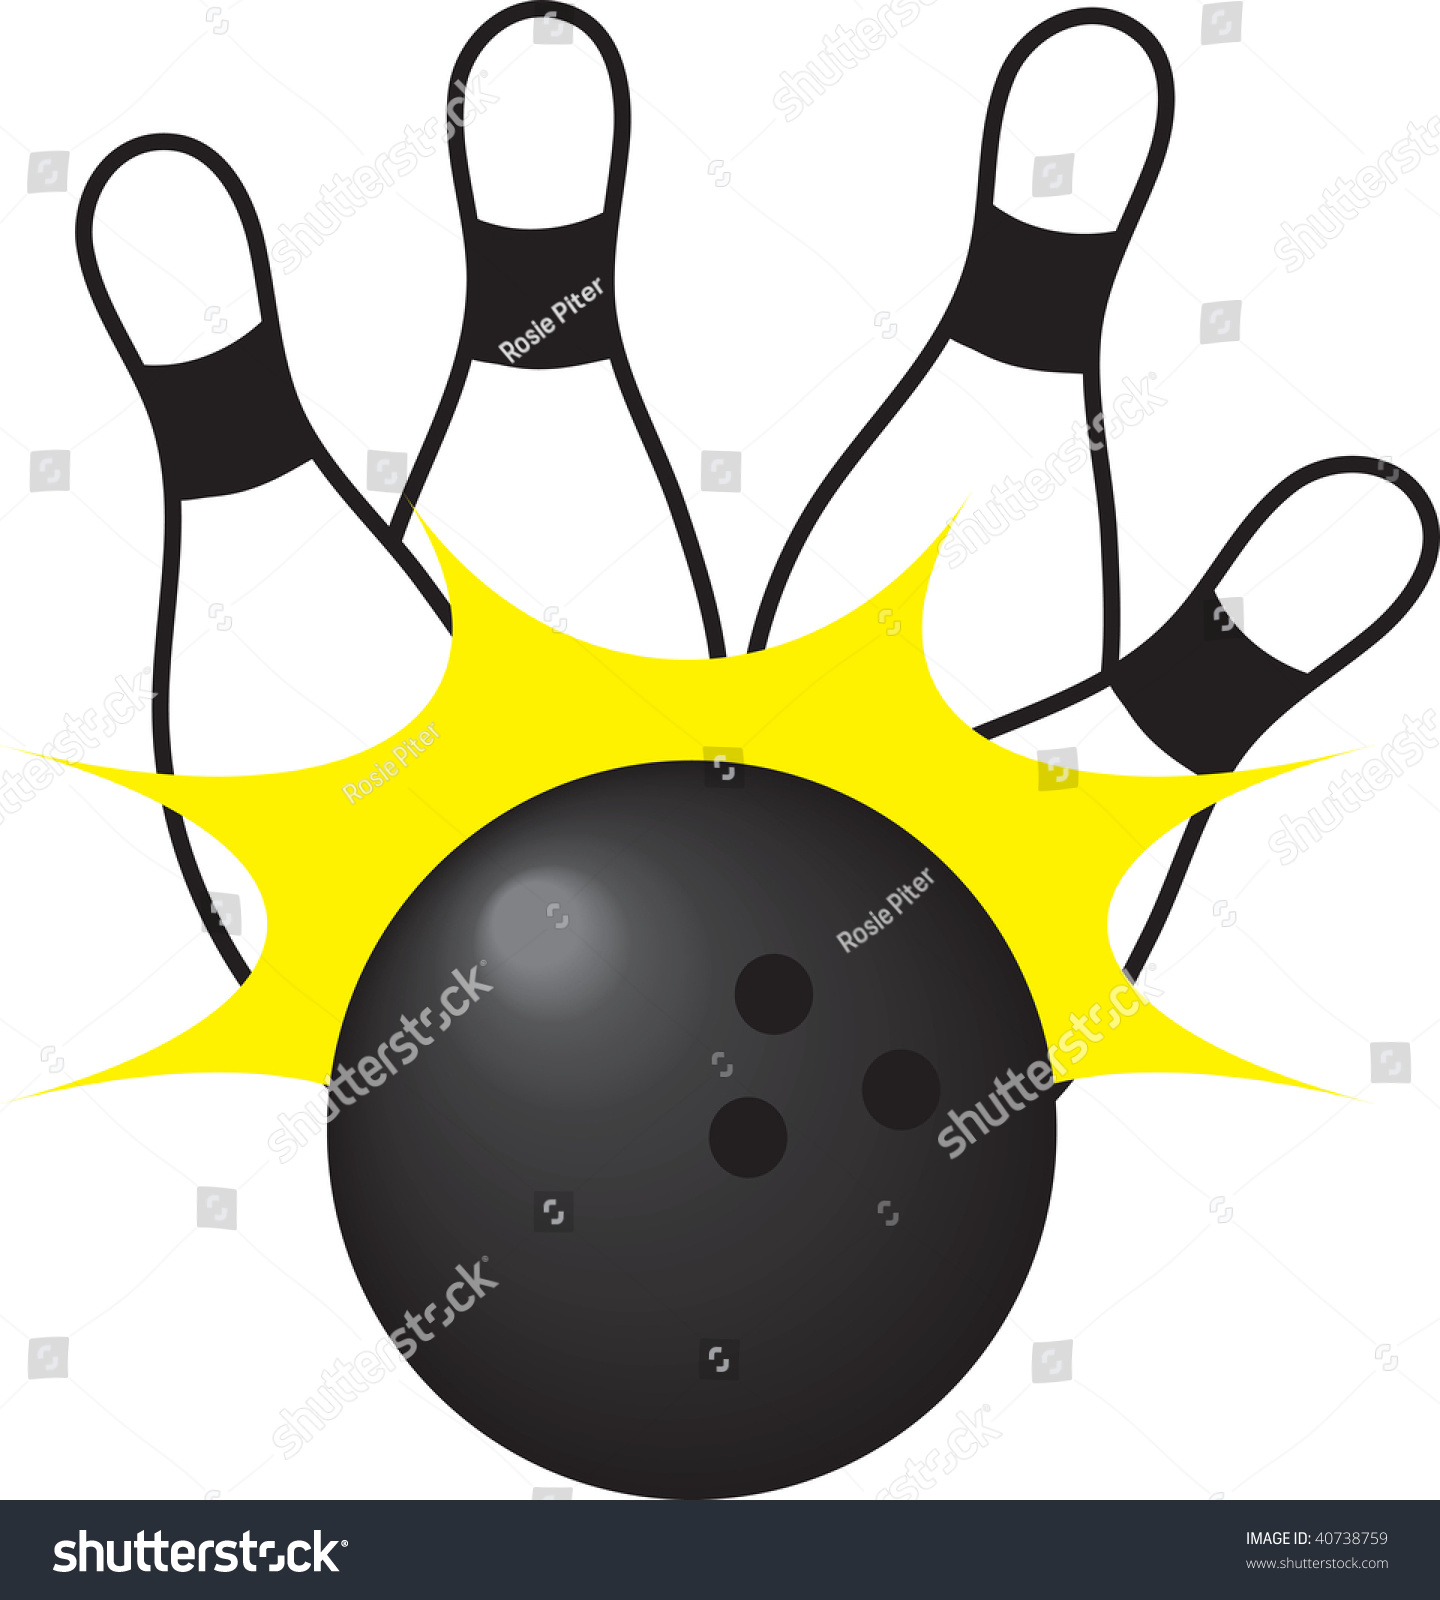 clipart illustration bowling ball knocking over stock illustration rh shutterstock com bowling ball pins clip art bowling ball clip art free